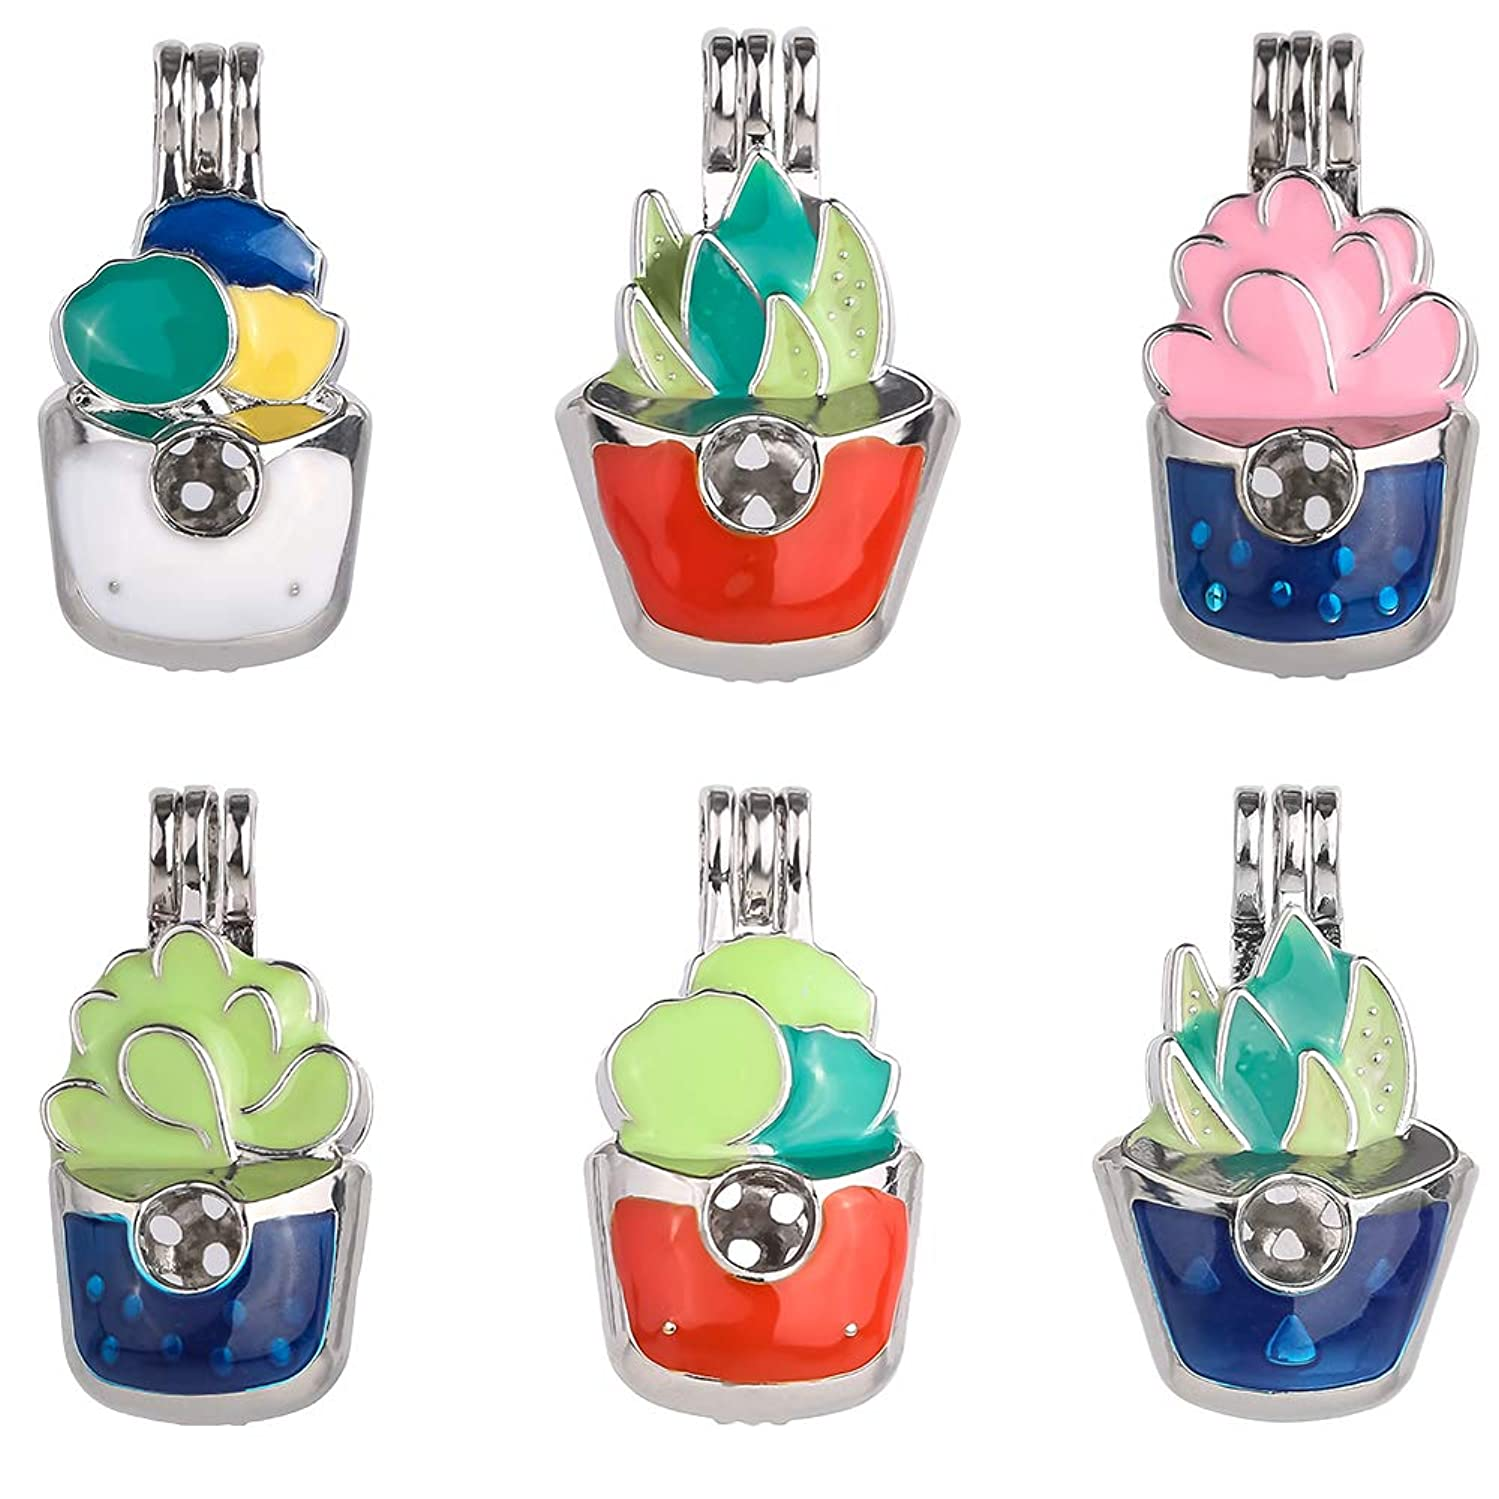 12pcs Mixed New Enamel Process Potted Style Pearl Bead Cage Pendant Essential Oil Scent Diffuser Pendant Necklace Jewelry Making Supplies